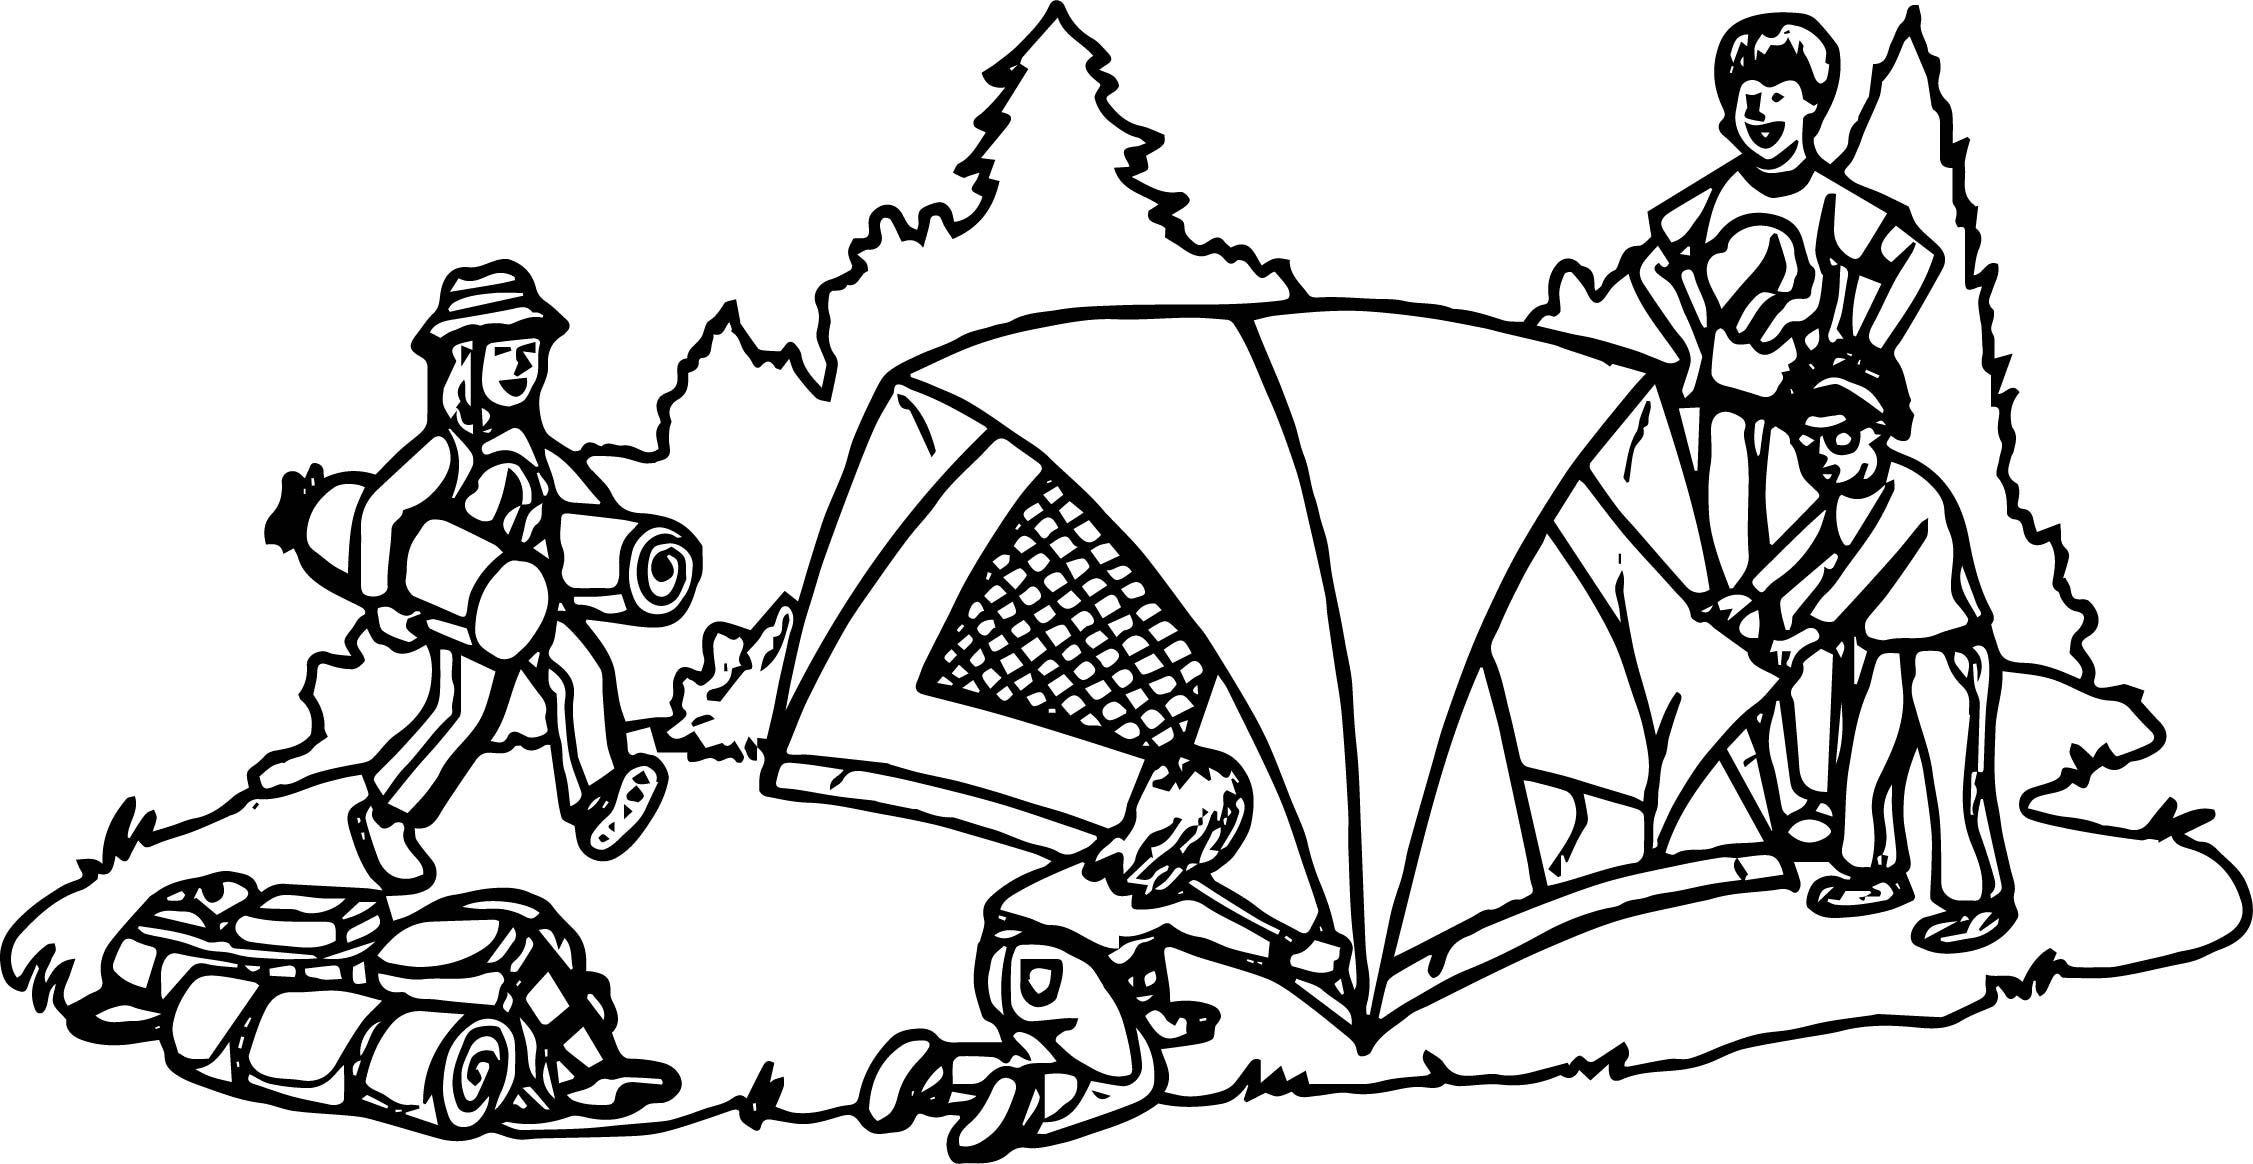 camping coloring pages for kids nice tent camping coloring page camping coloring pages kids camping for coloring pages